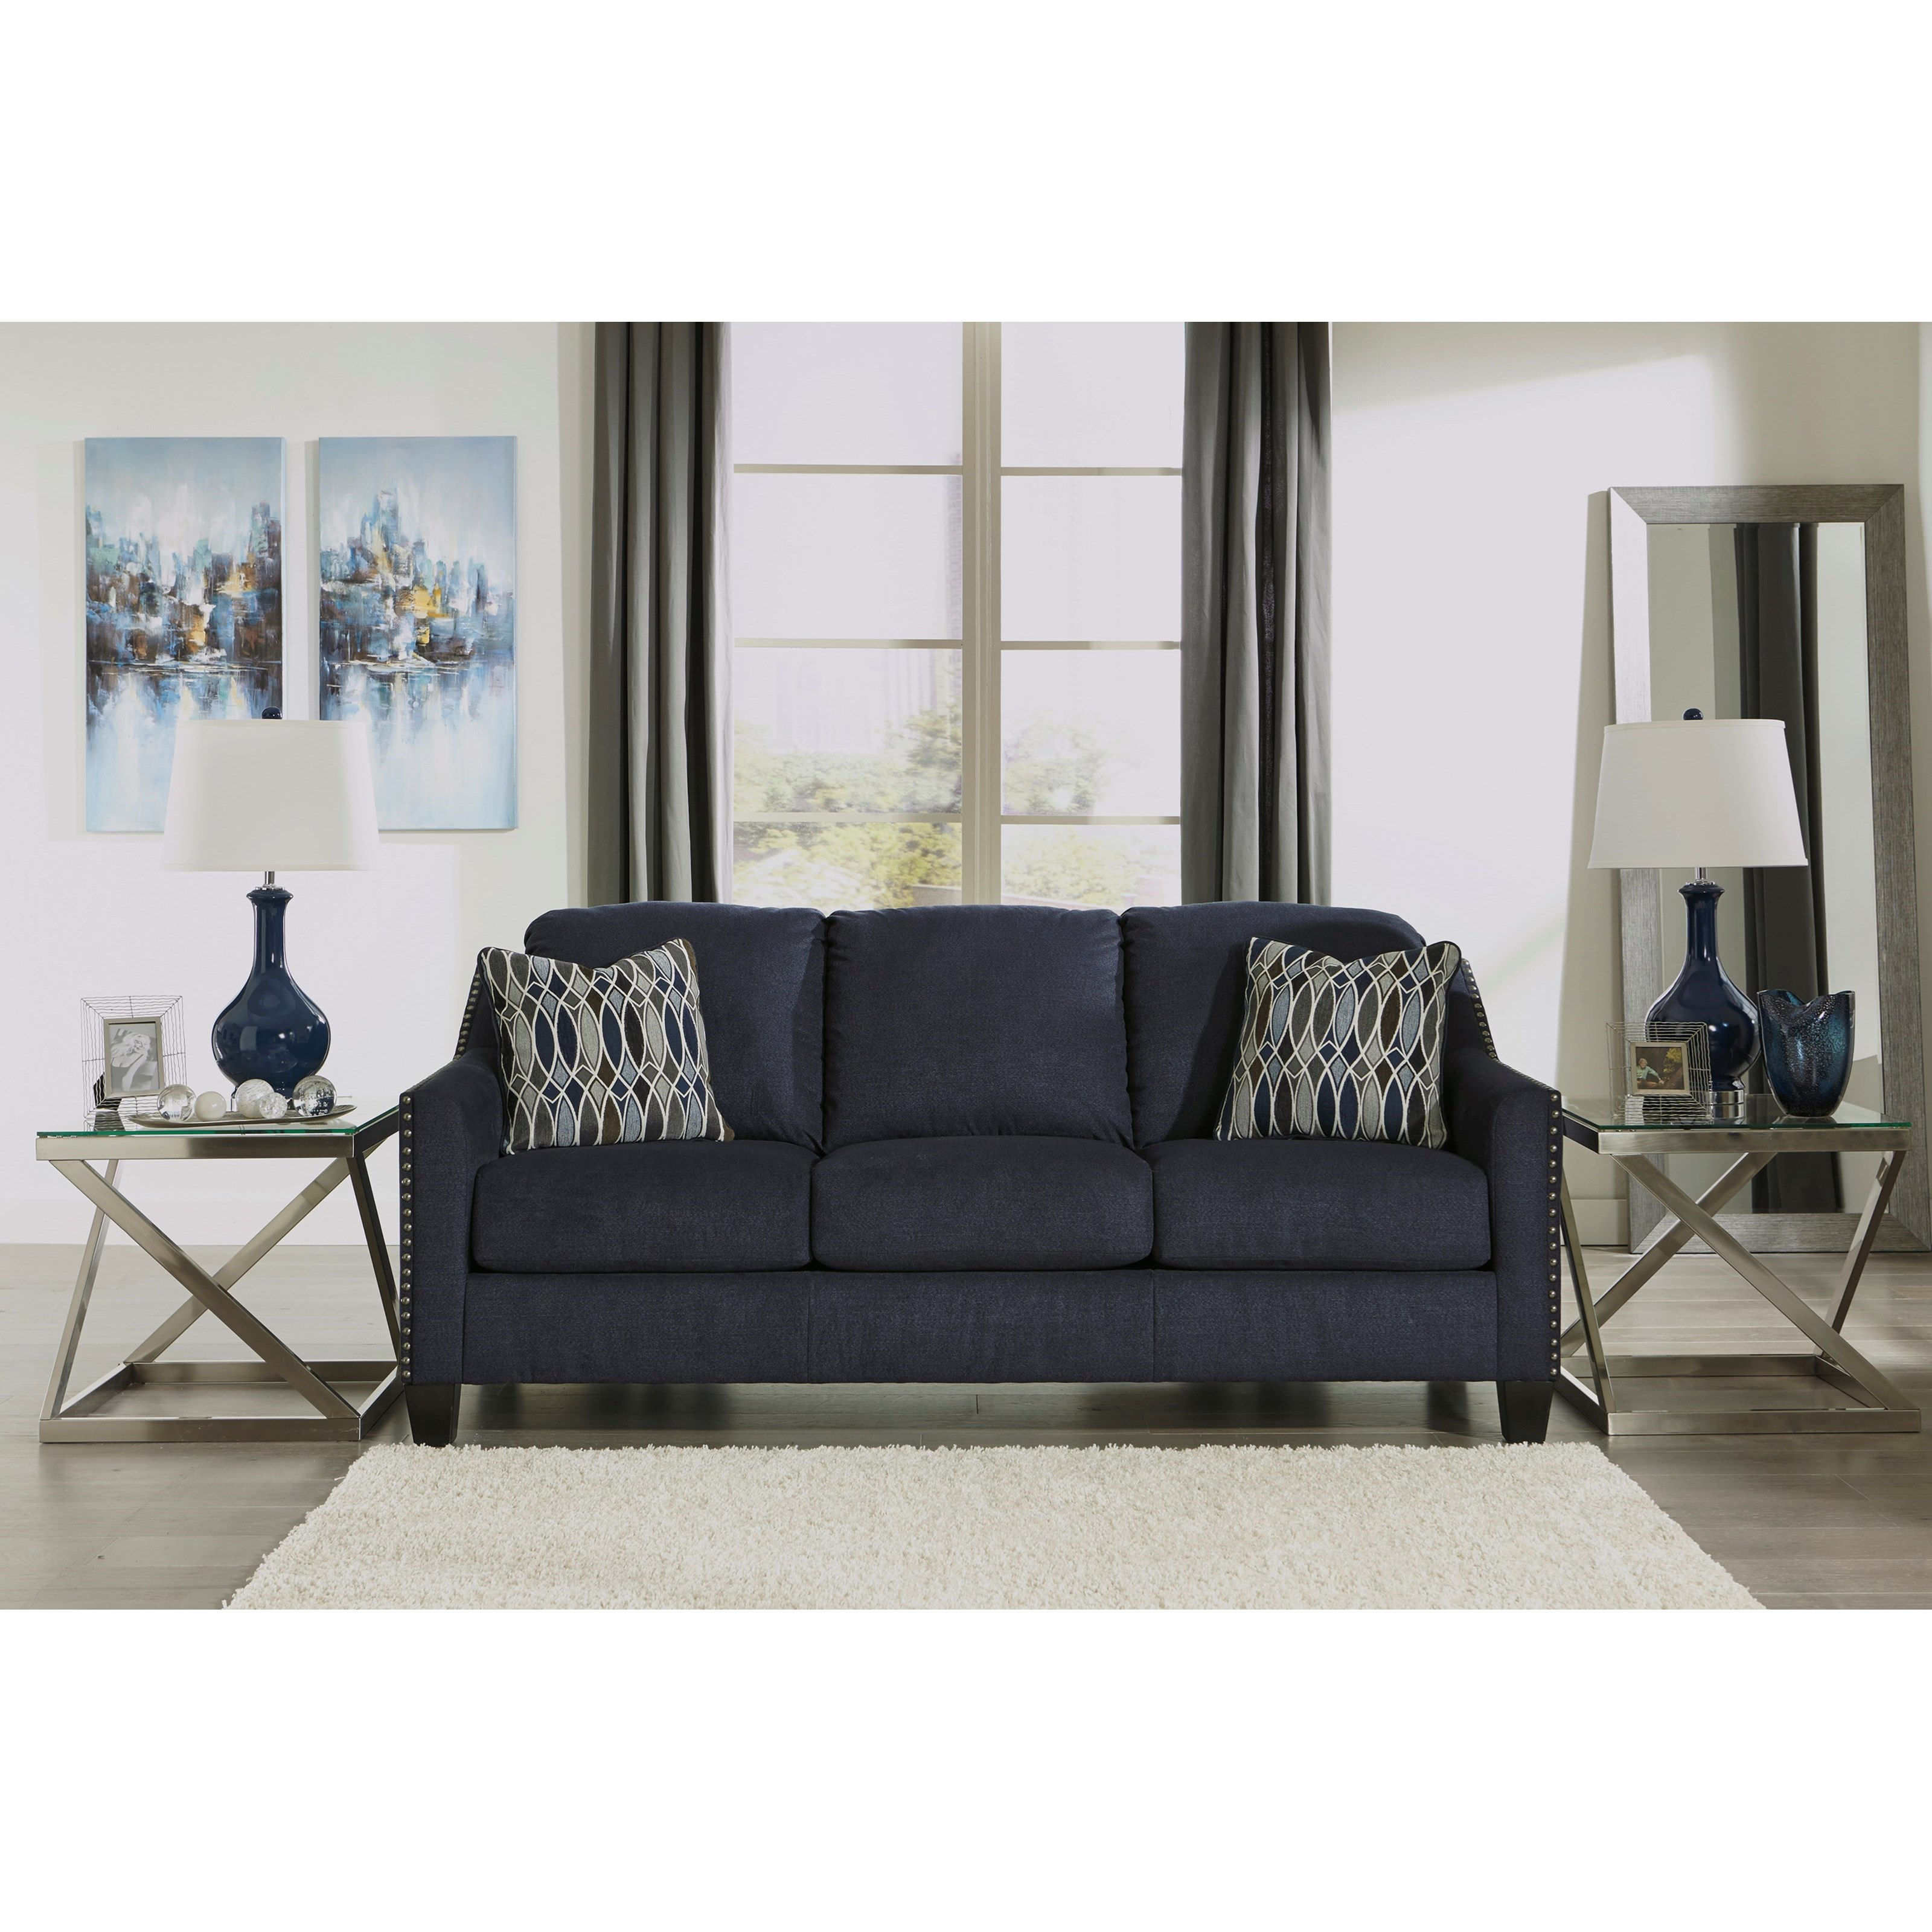 Places That Sell Furniture: Benchcraft By Ashley Creeal Heights Sofa With Nailhead